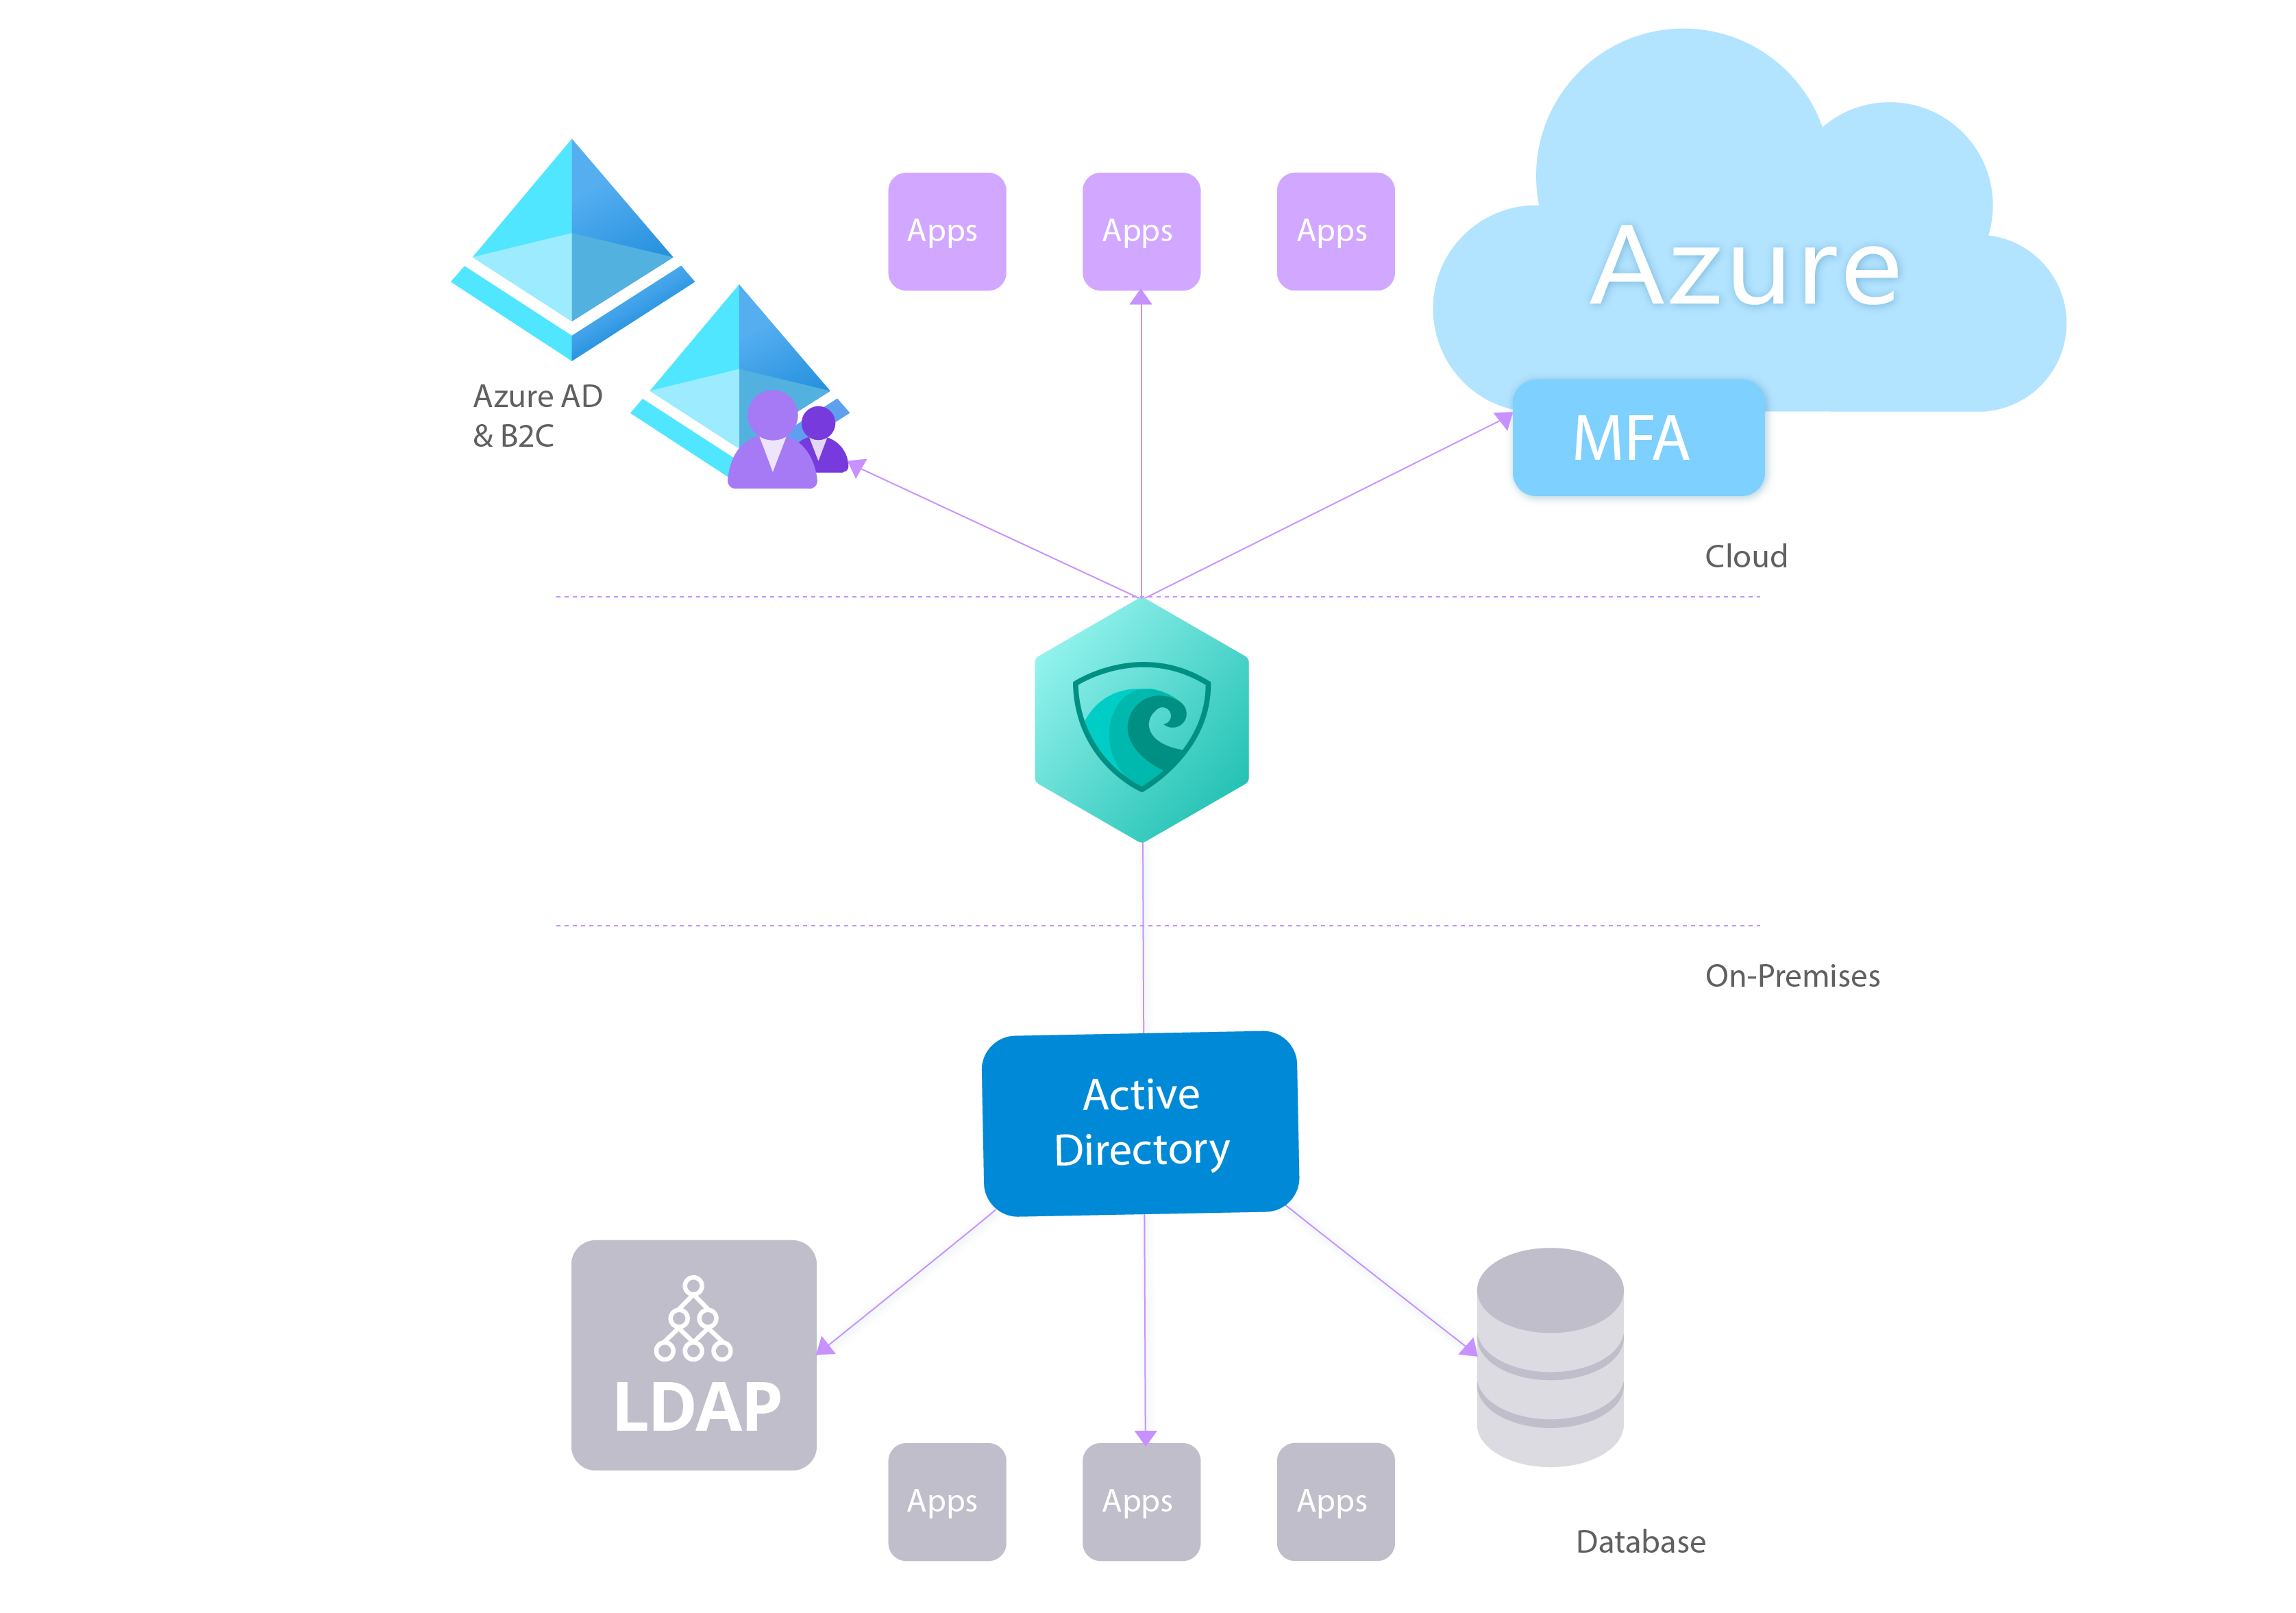 Hybrid Identity - Provision Consistent Access Policy Across Cloud and On-Premises